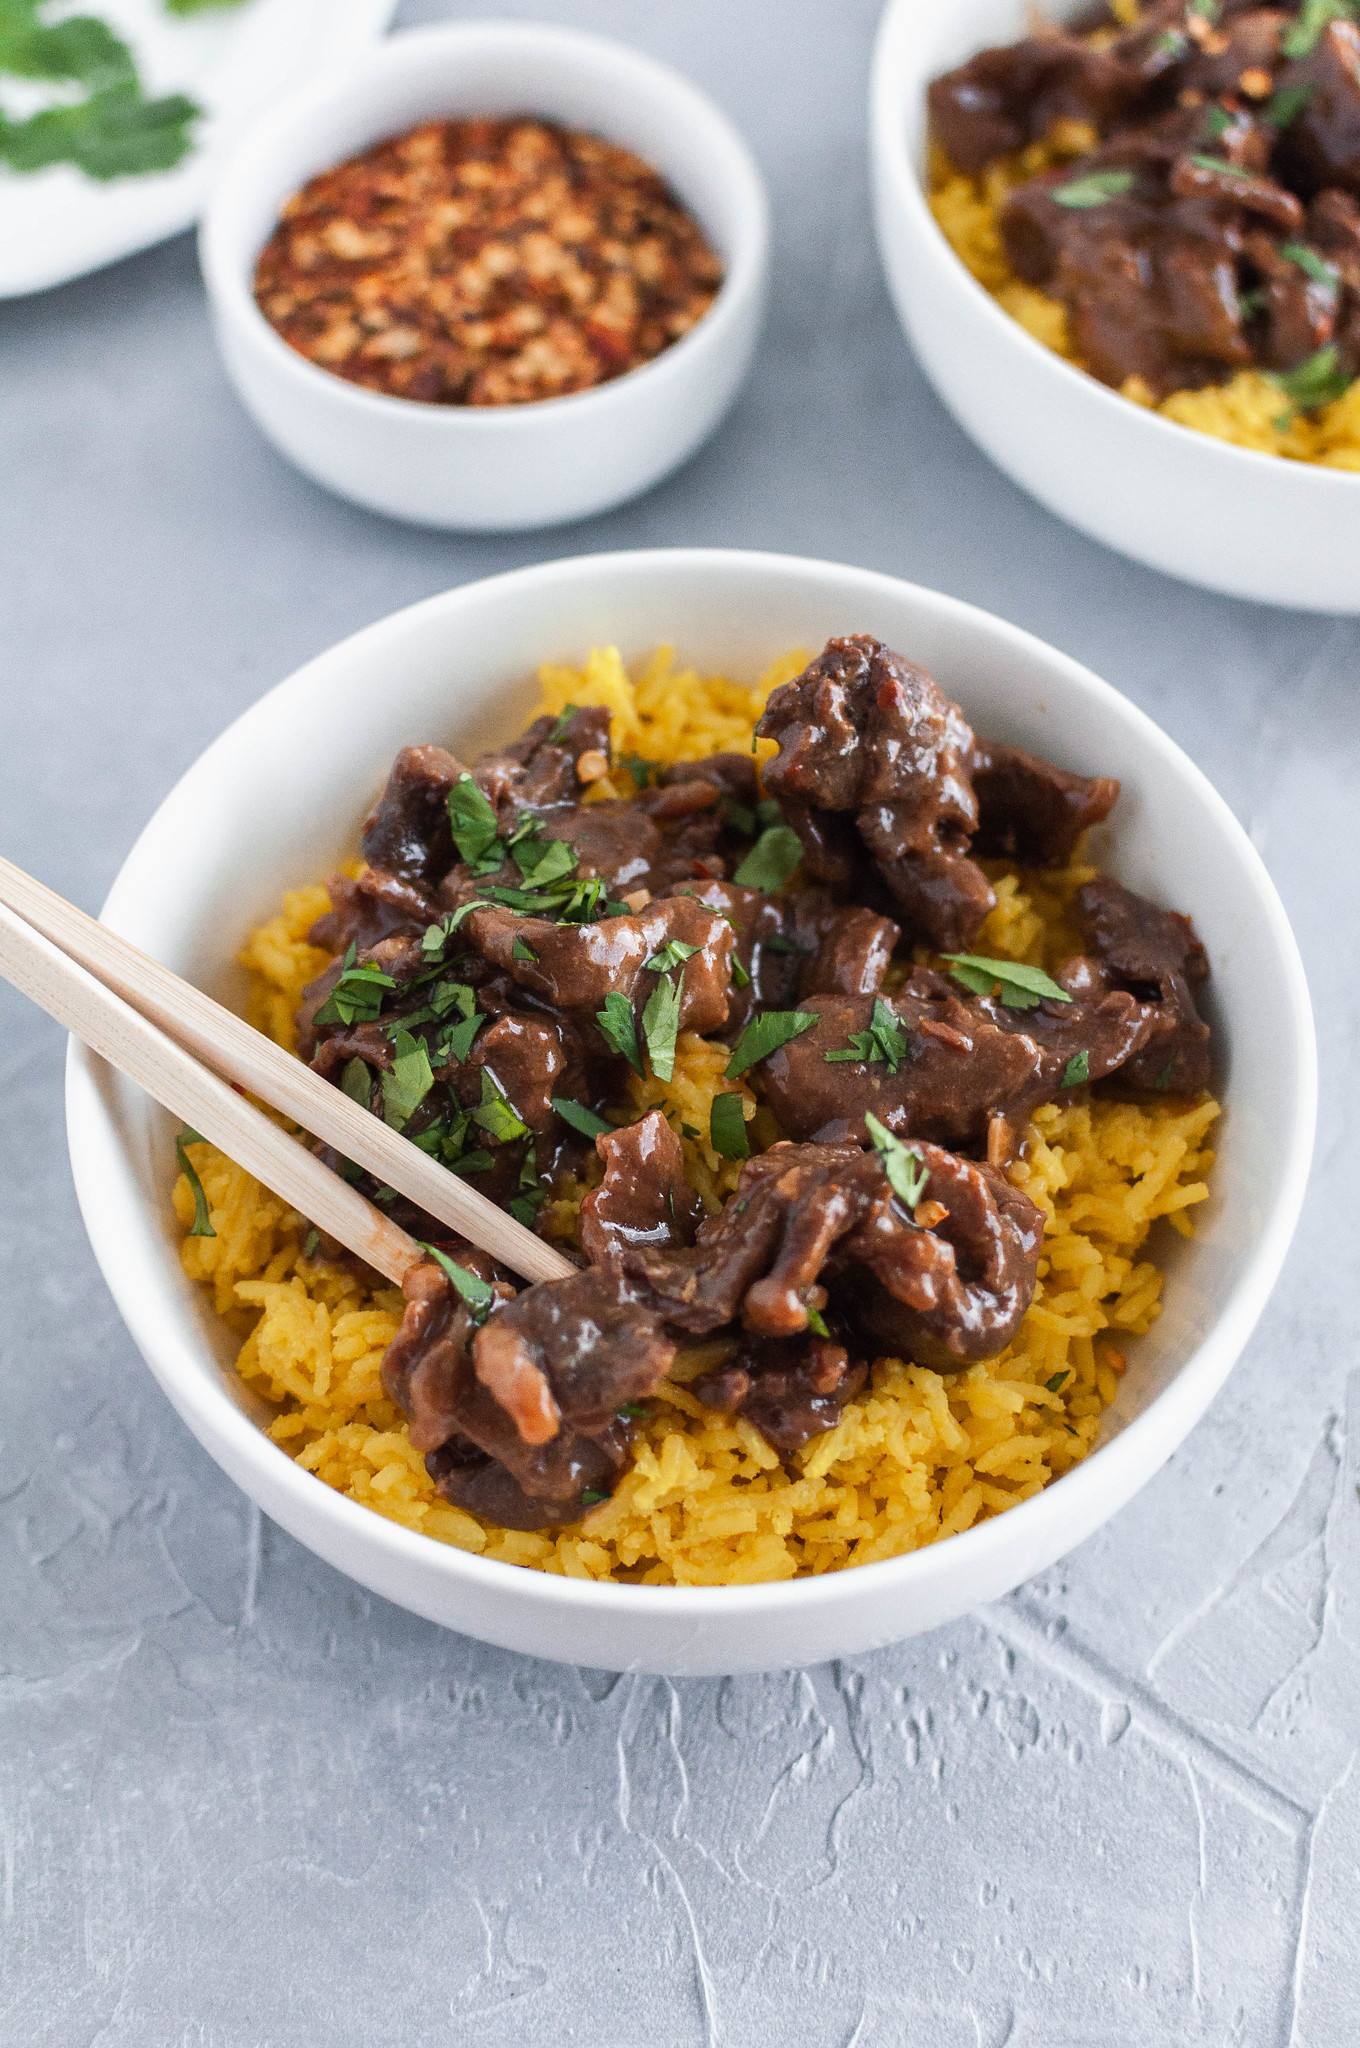 Instant Pot Thai Beef is a super simple dinner you need this week. Less than 30 minutes needed for this super flavorful Thai Beef.